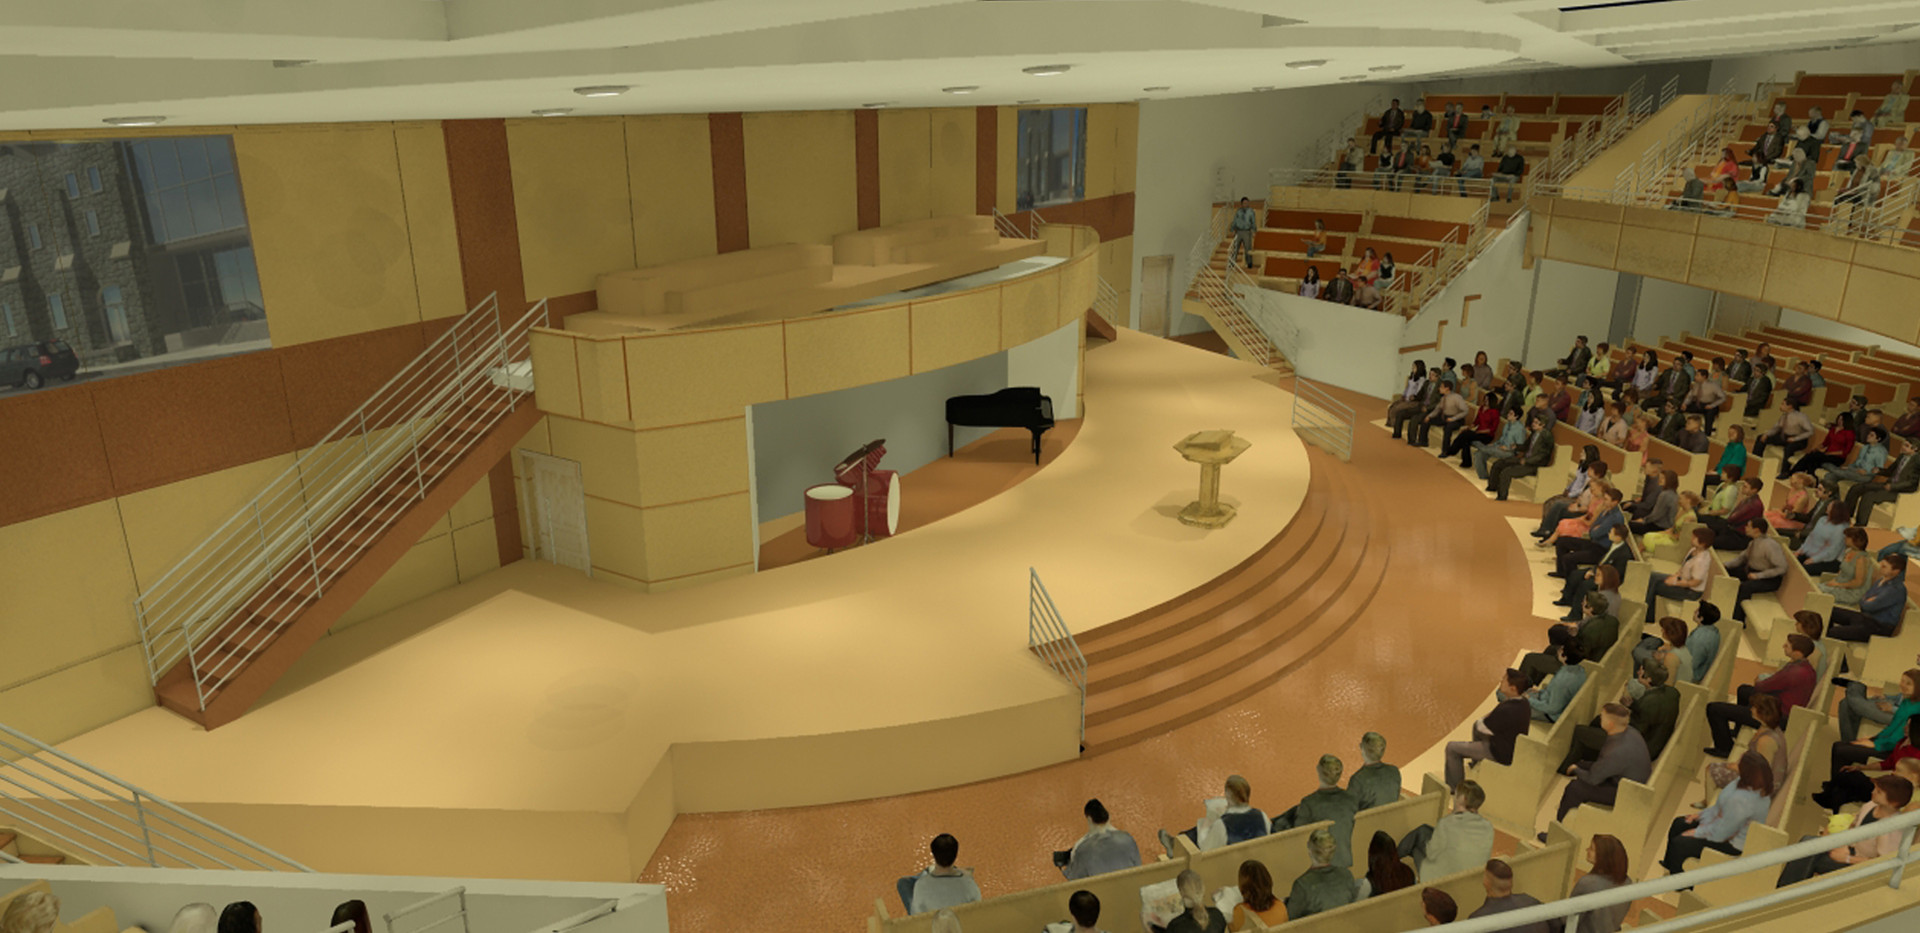 Zion Baptist Church - Interior Rendering